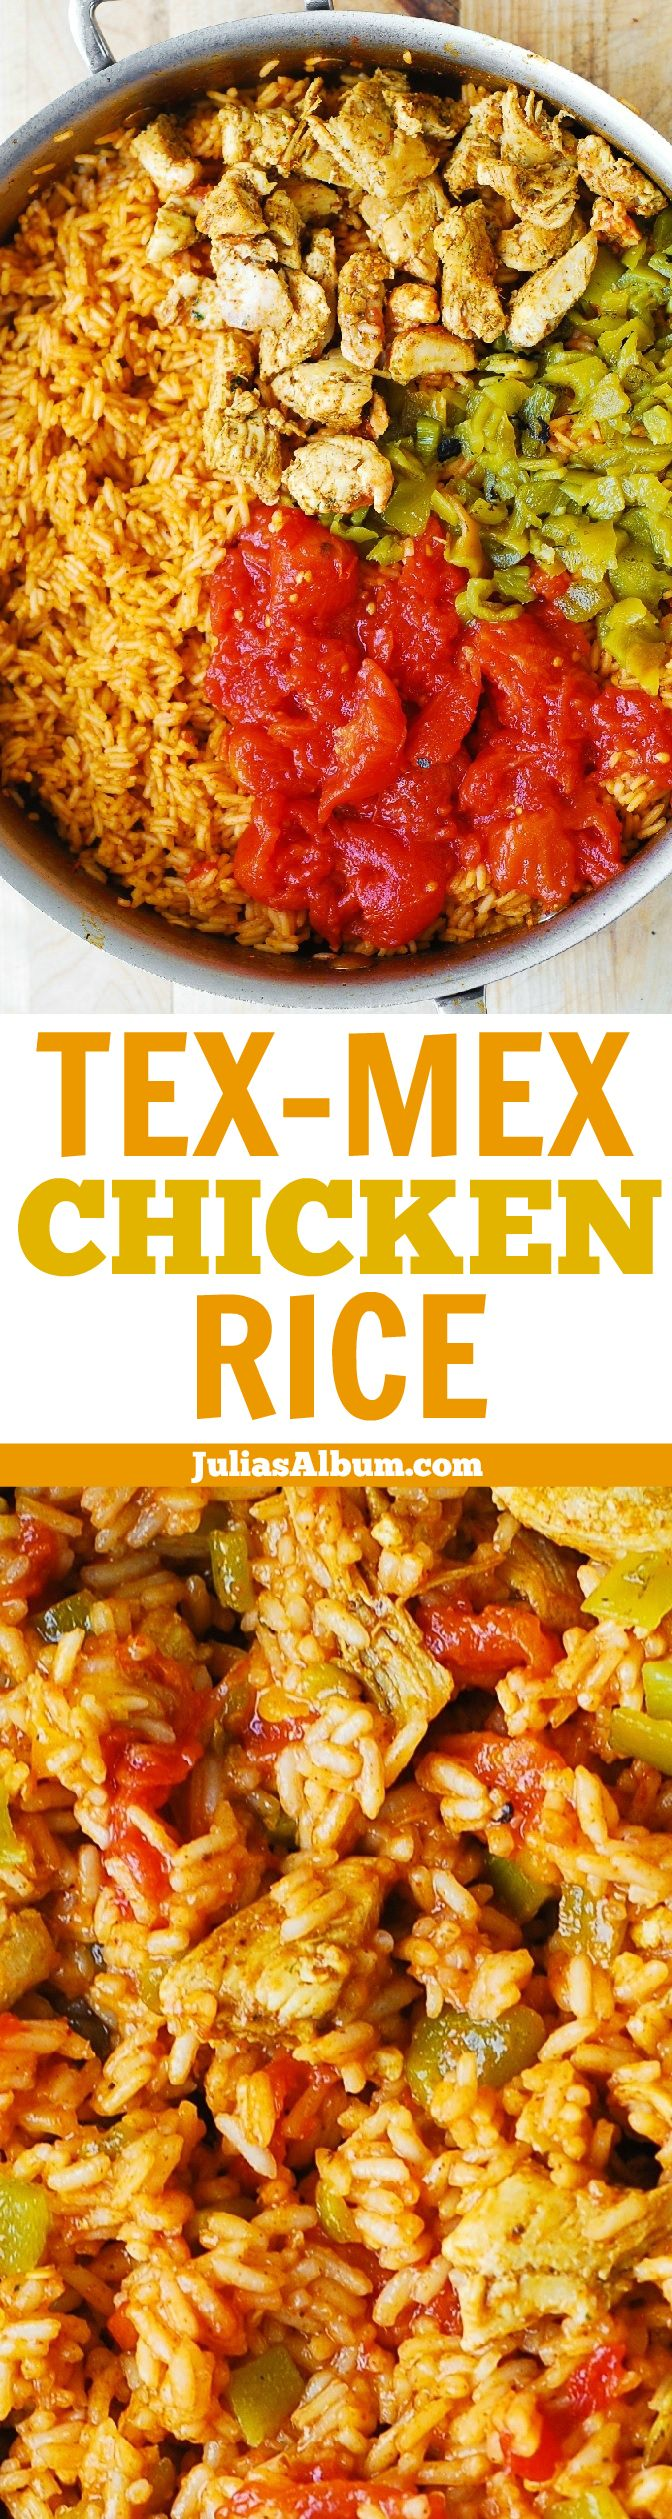 Tex-Mex Chicken and Rice Skillet with Southwestern flavors you love: chili powder, cumin, diced green chiles. #BHG #sponsored